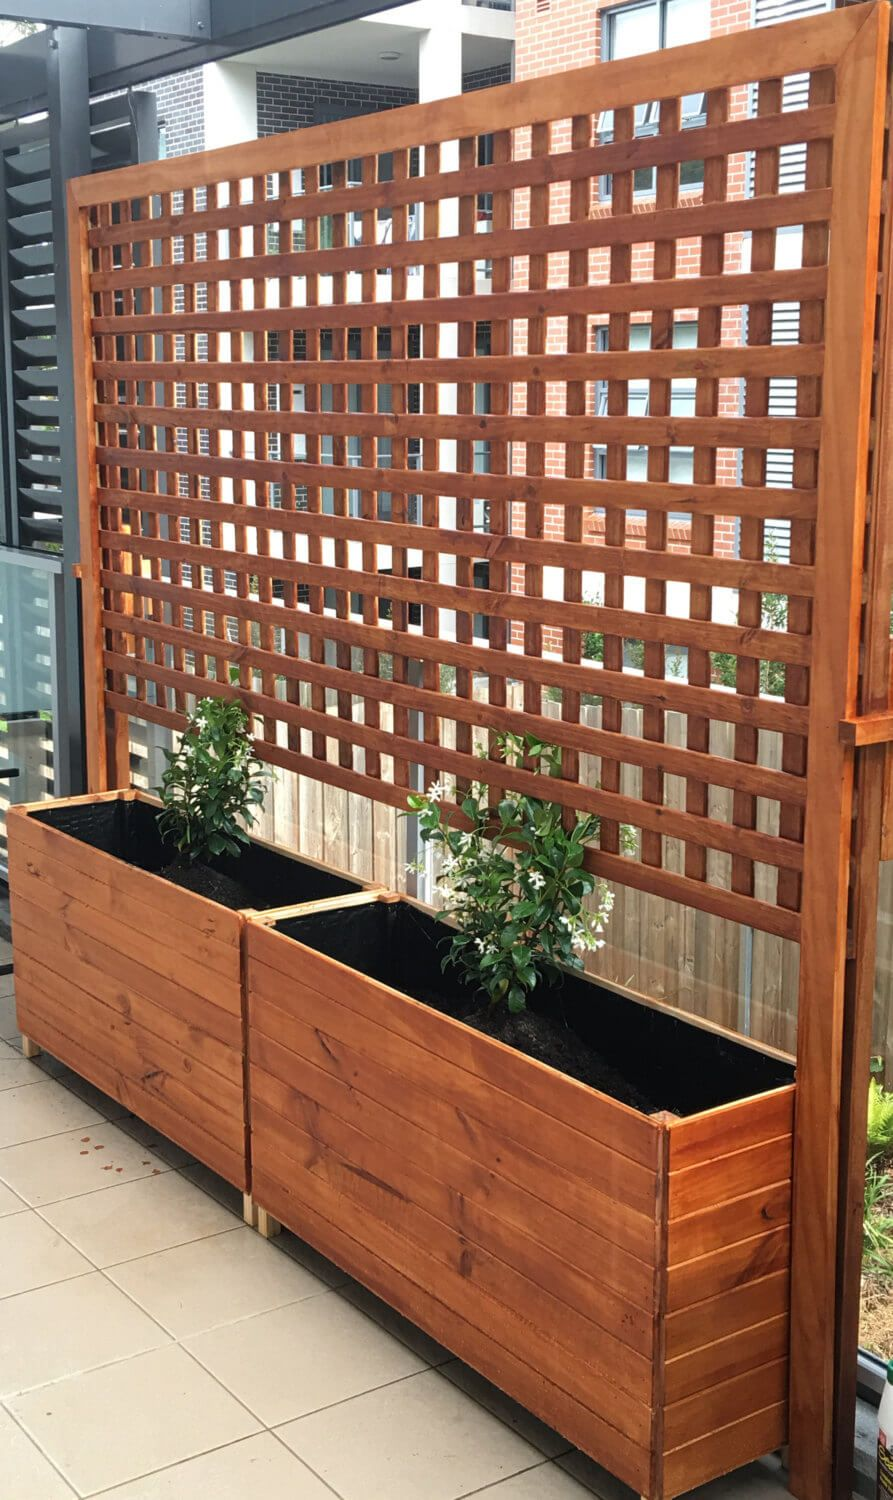 33 beautiful built in planter ideas to upgrade your for Privacy planter ideas